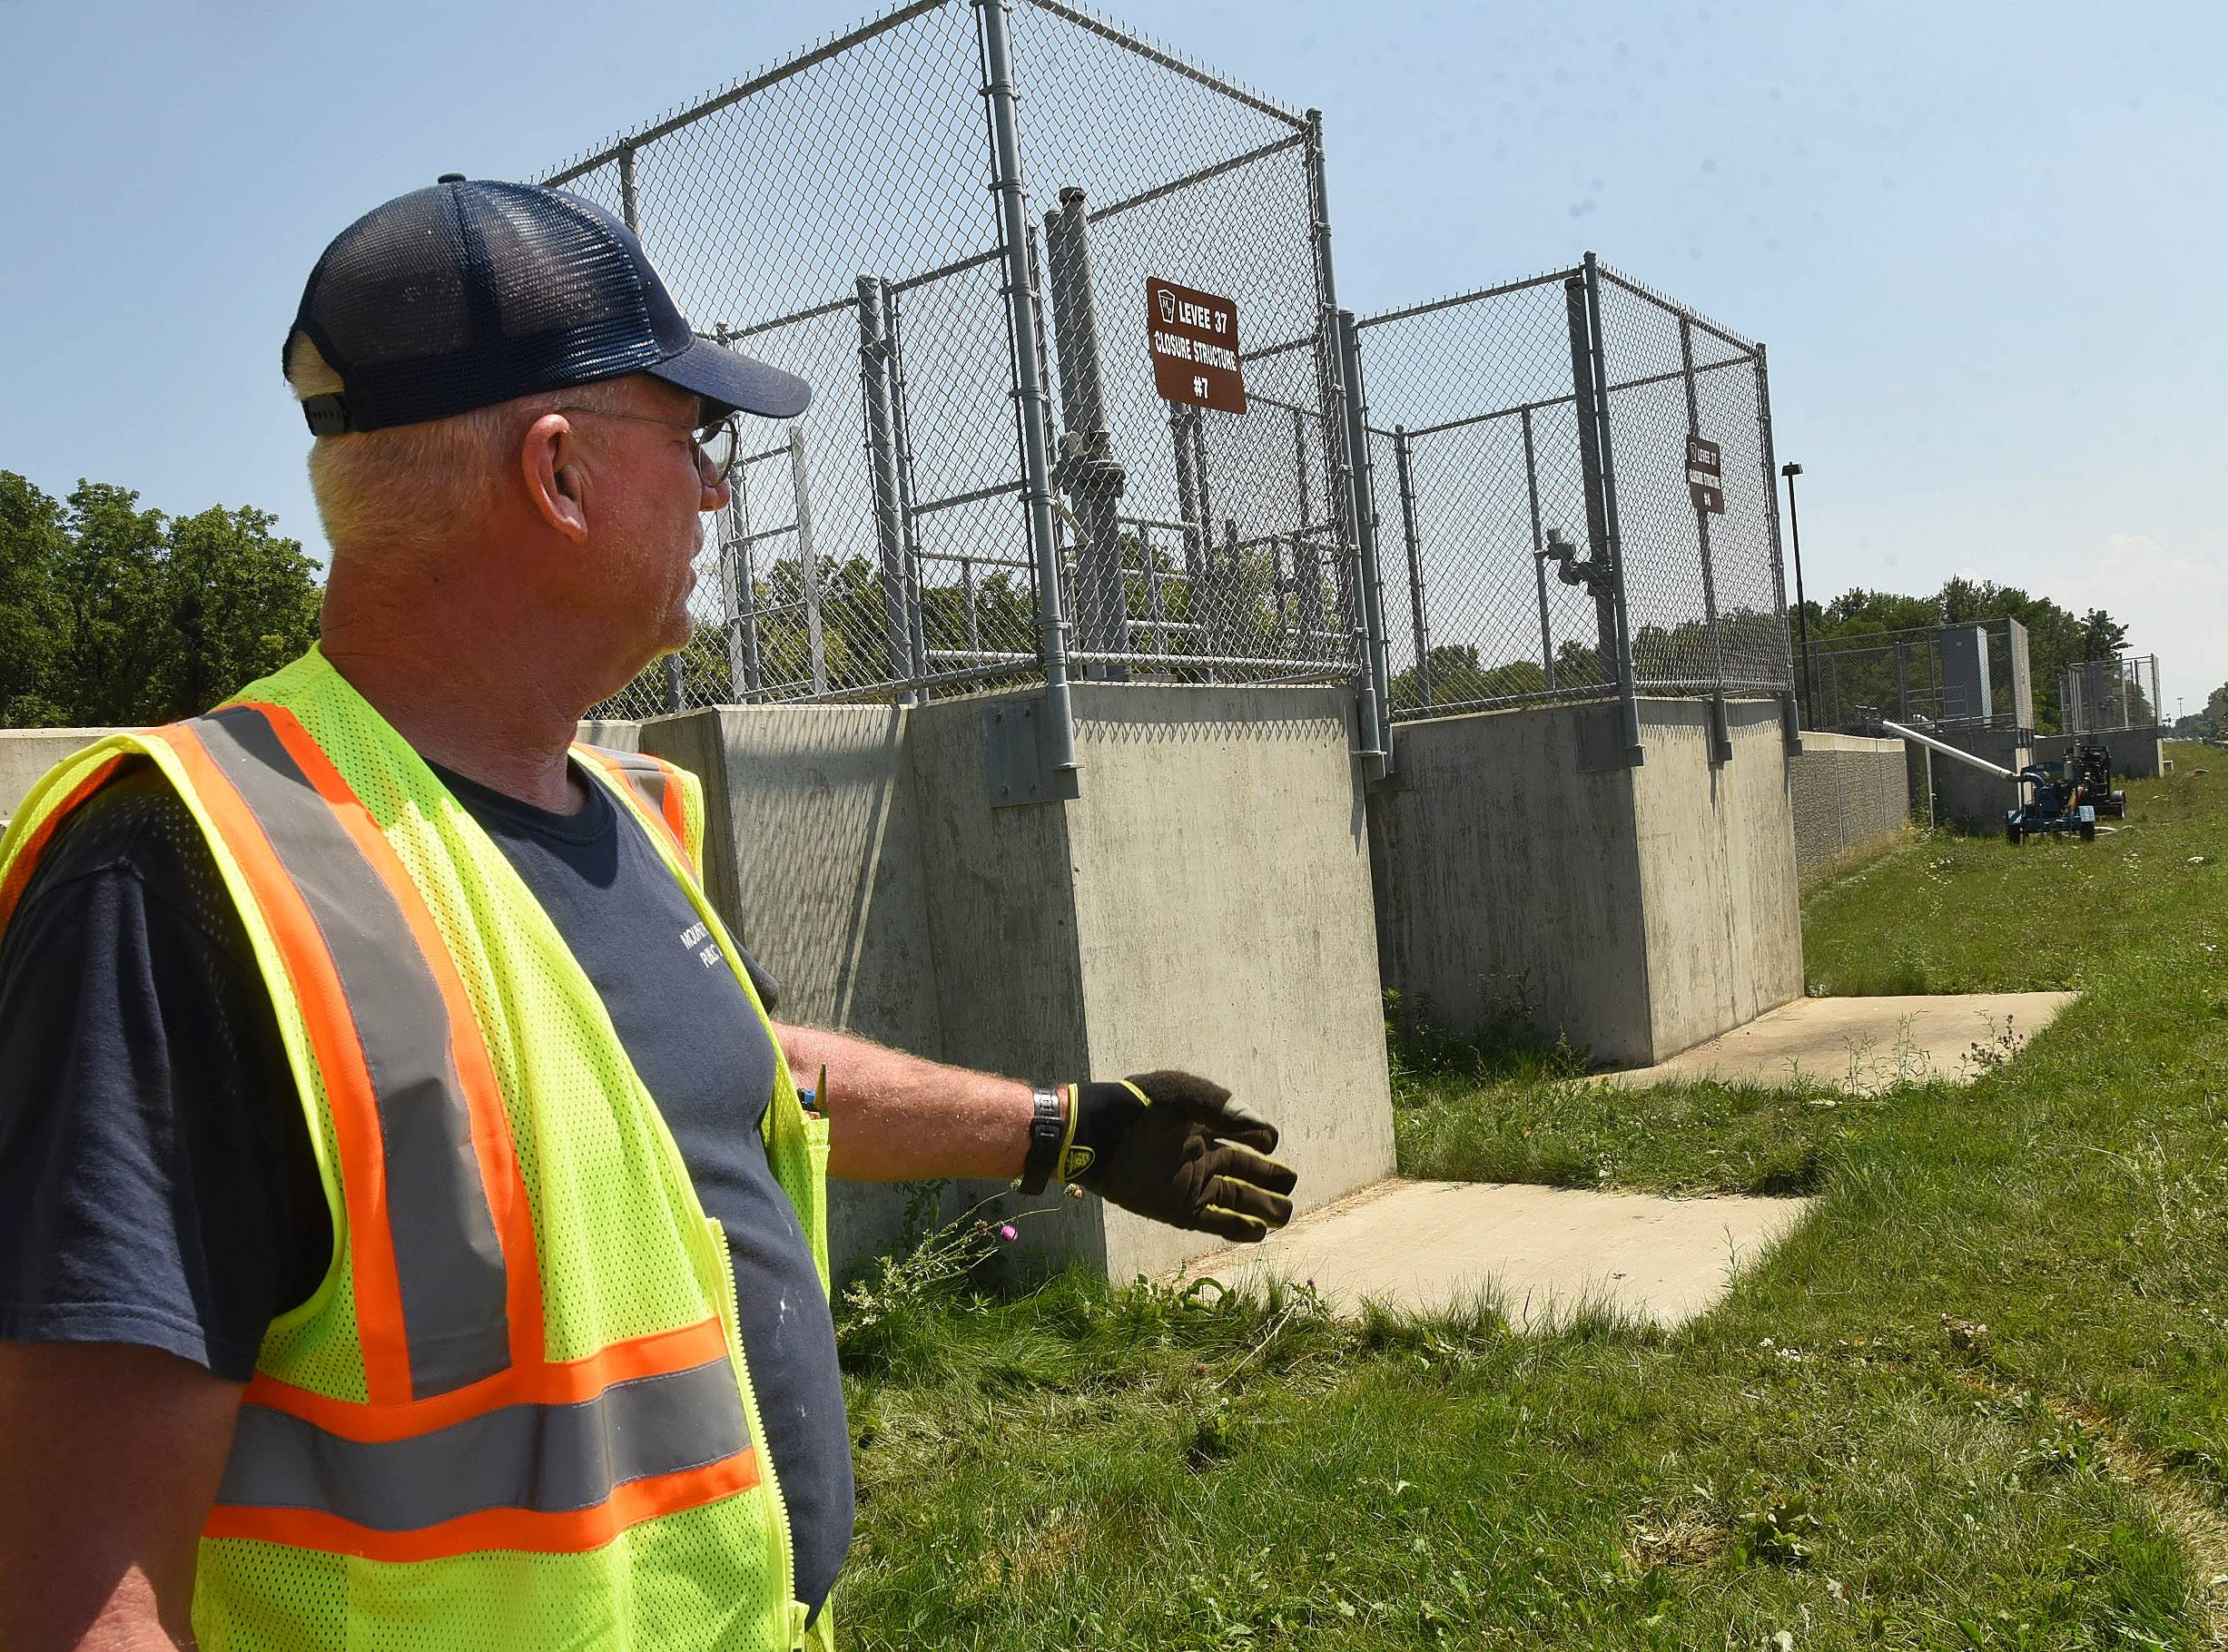 Steve Balogh of the Mount Prospect public works department helps oversee Levee 37 along River Road. The flood wall, finished in 2015, helped keep neighborhoods dry during recent storms.